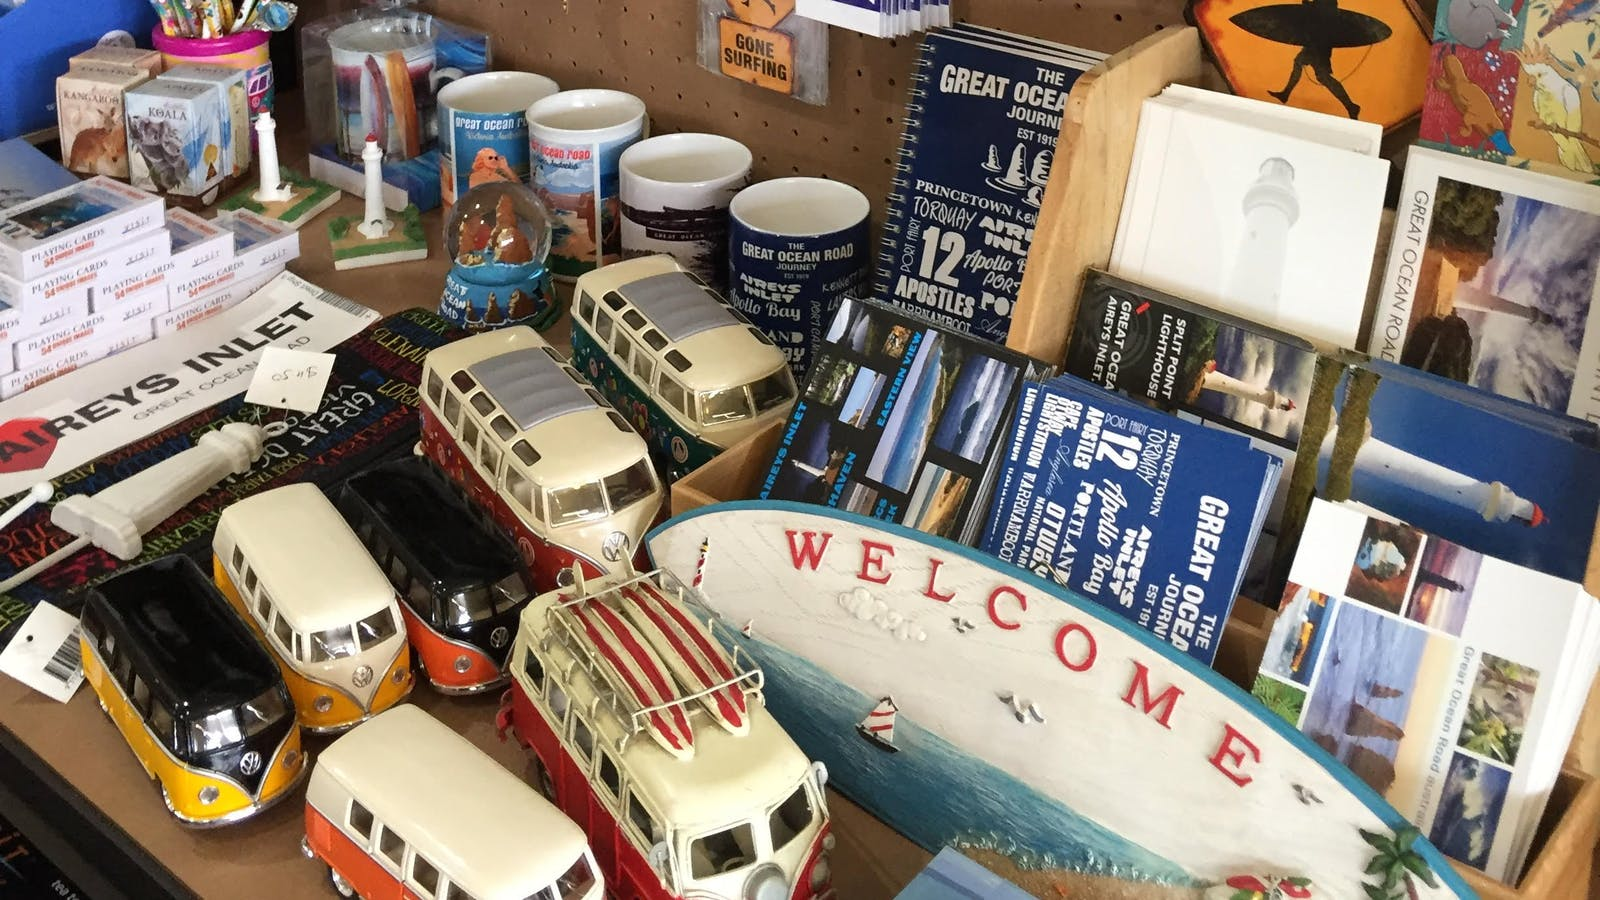 Mementos of your Great Ocean Road trip